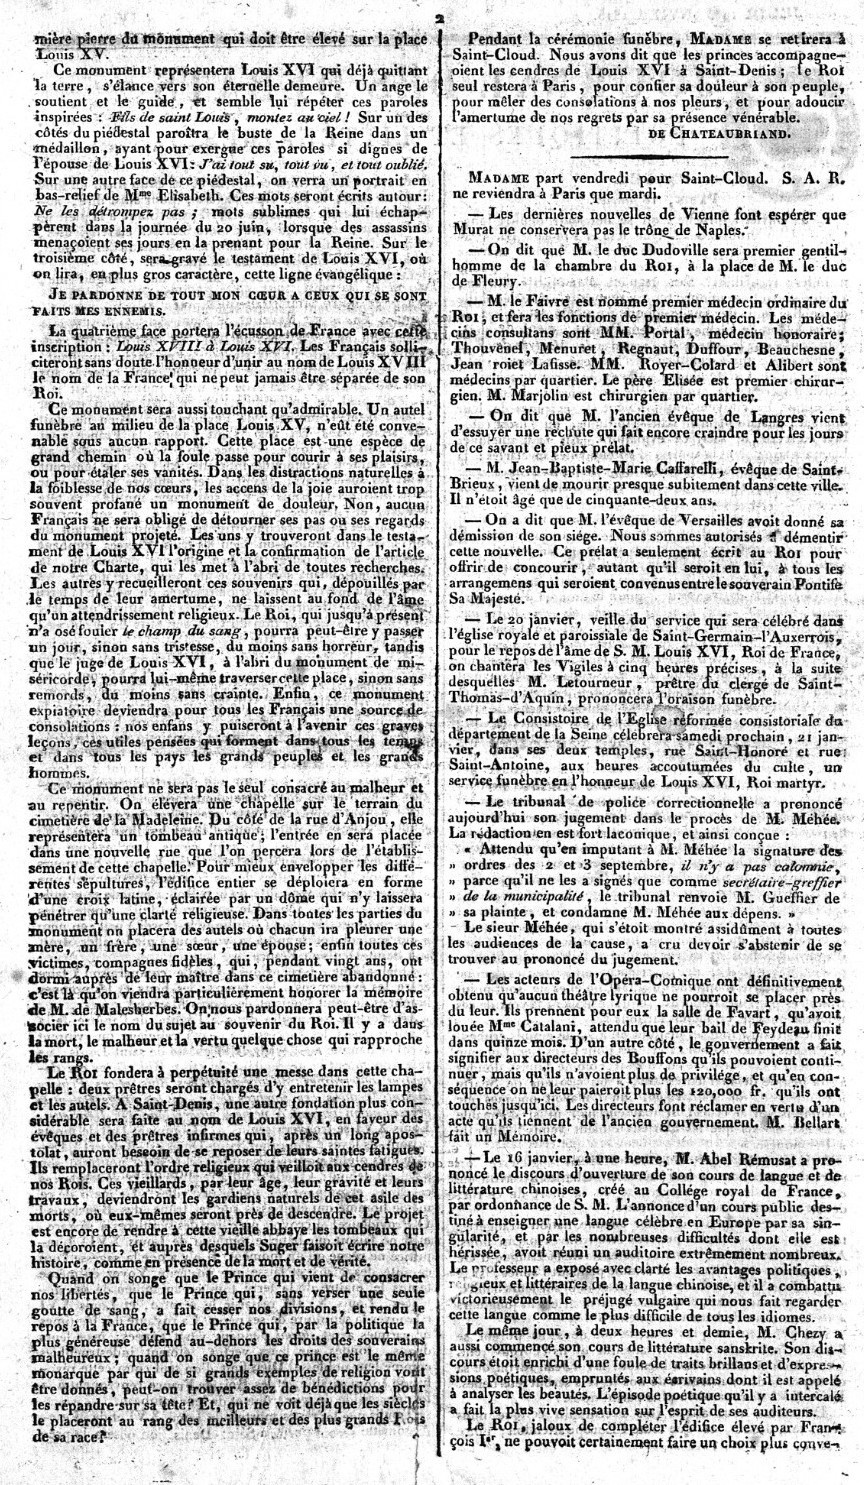 La Chapelle Expiatoire du square Louis XVI, à Paris - Page 3 Journa11